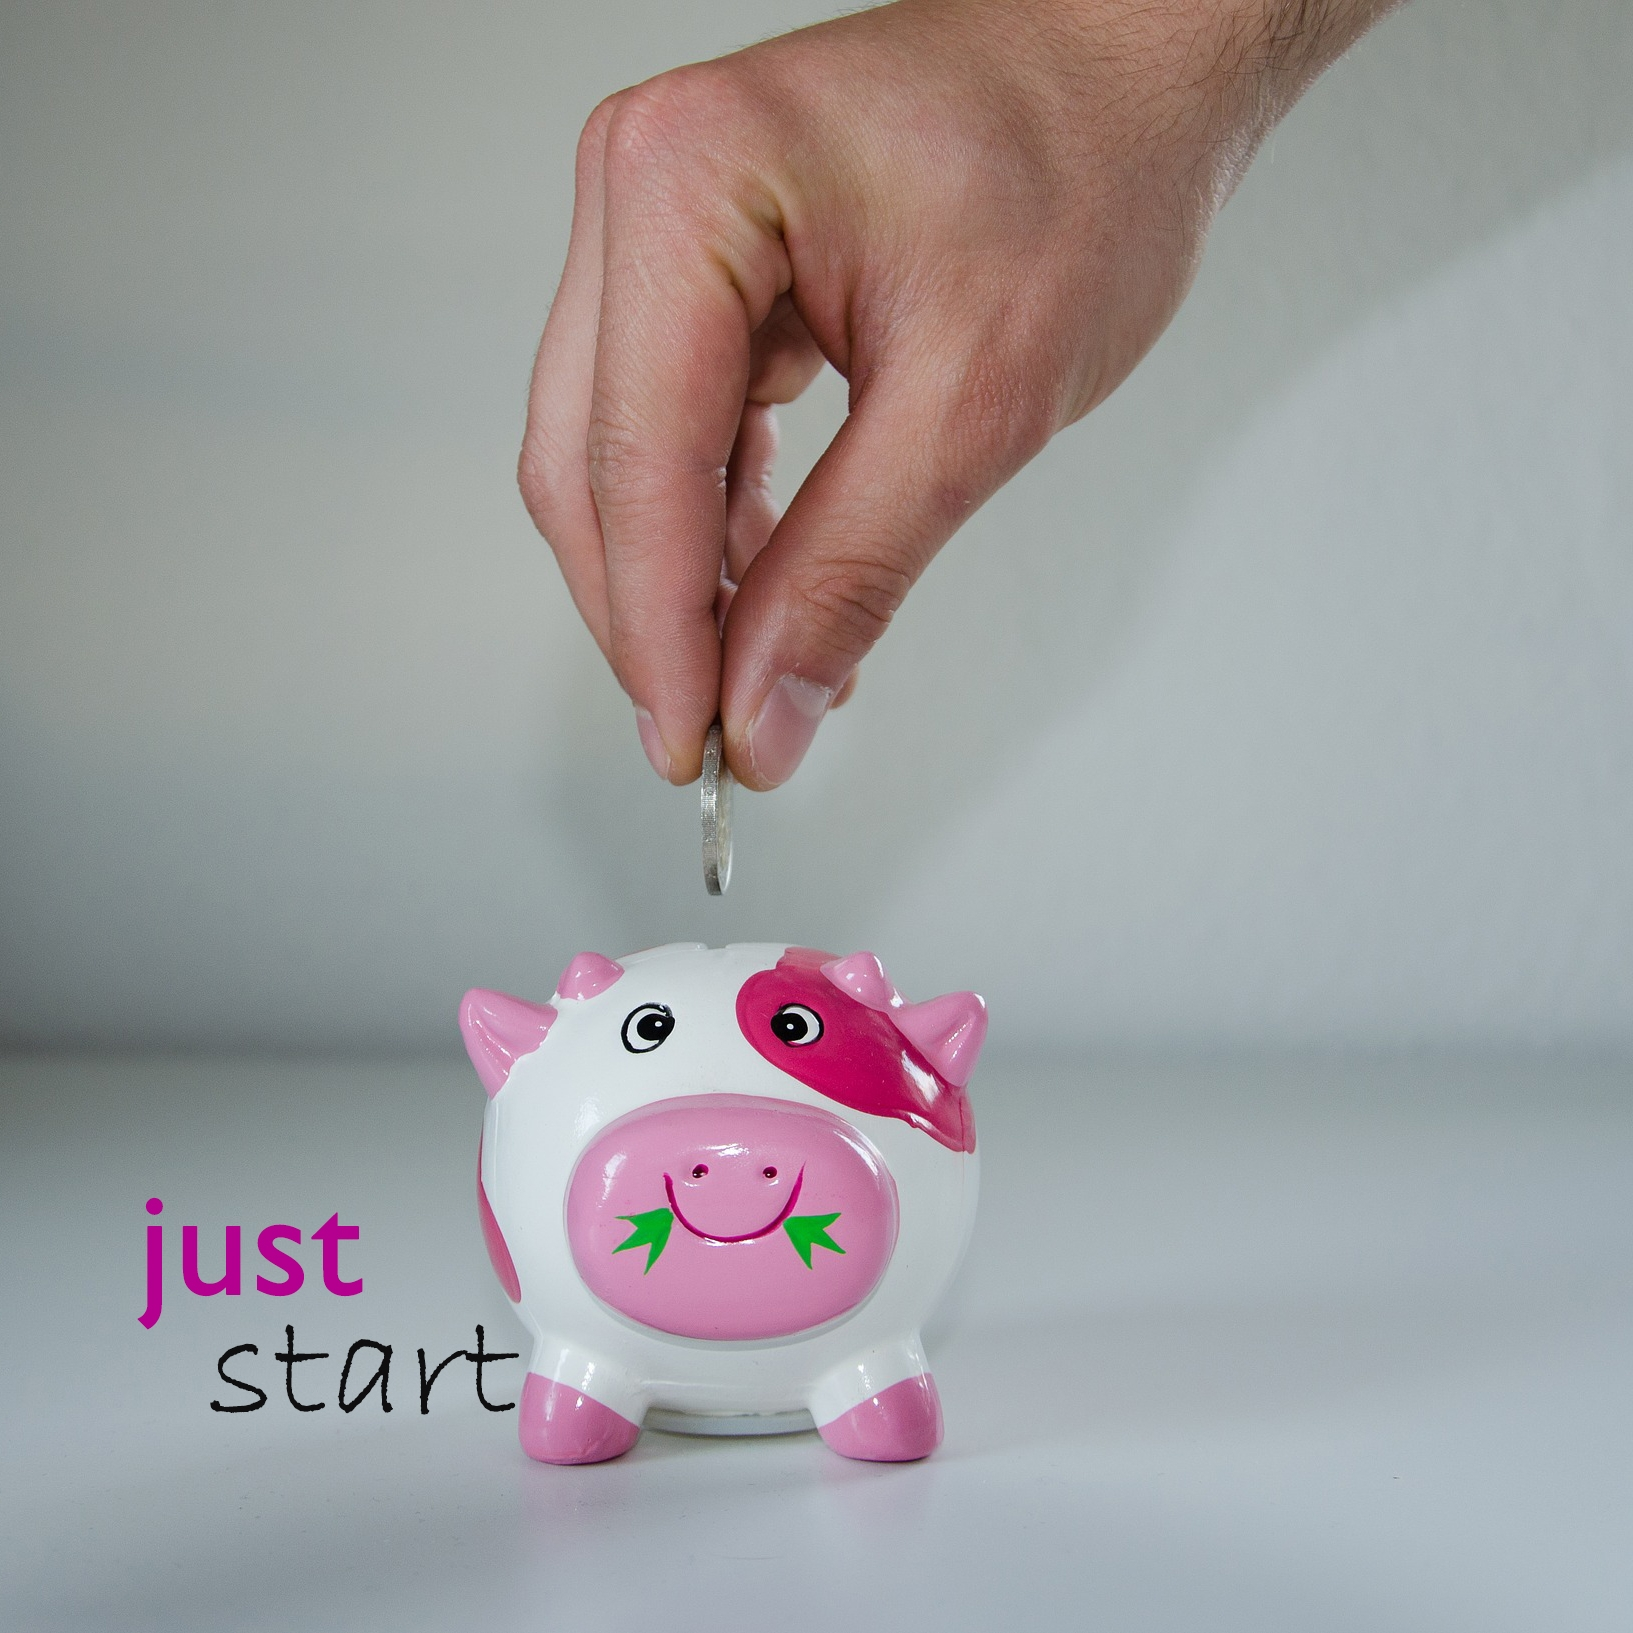 save pink piggy bank.jpg